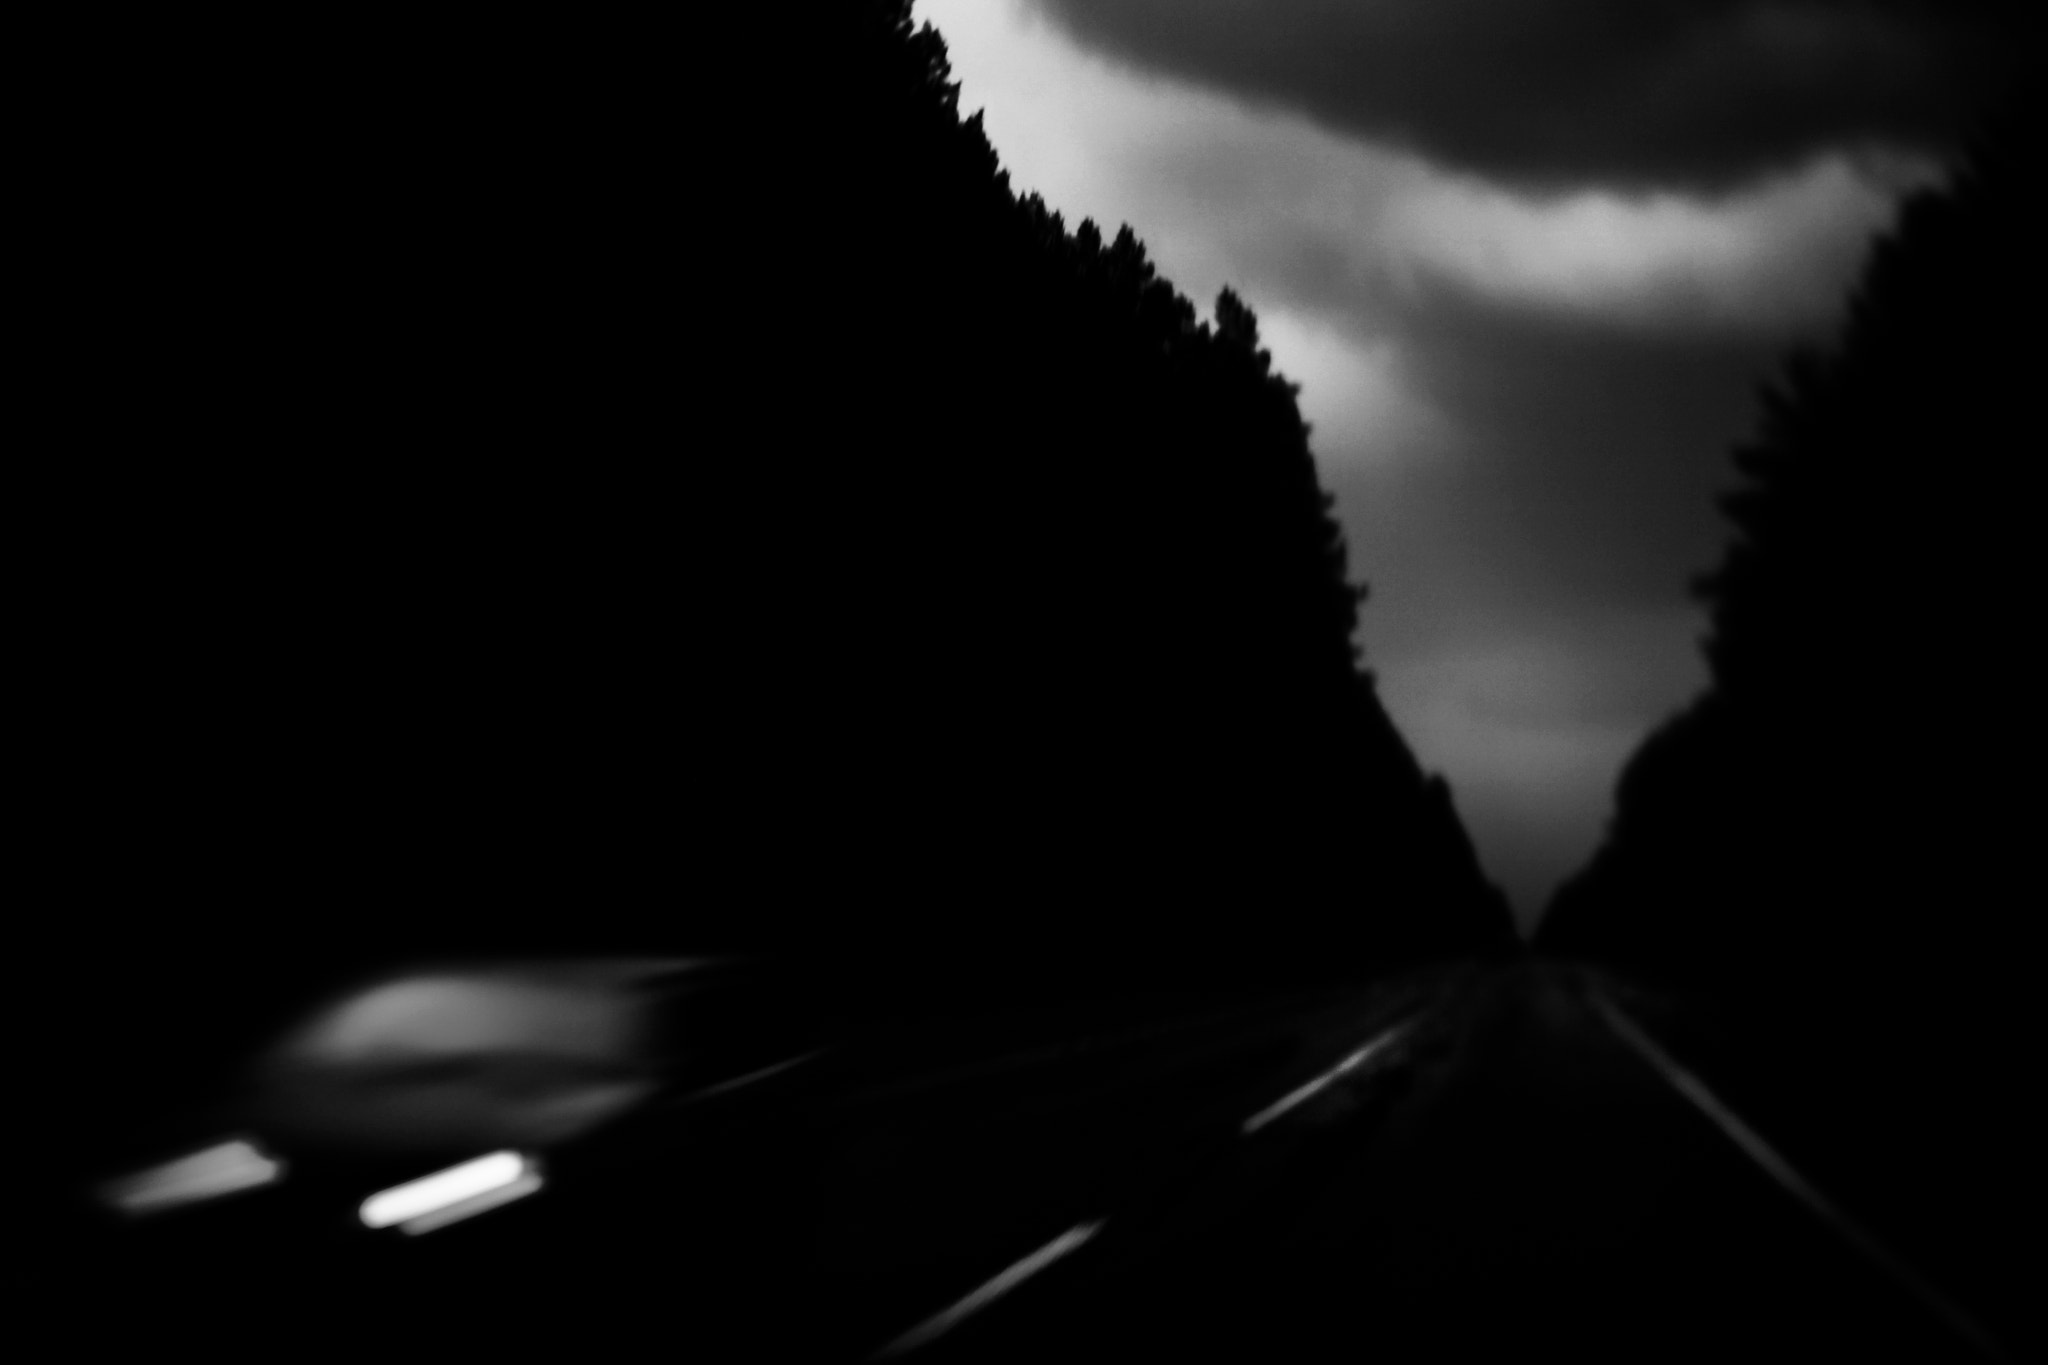 Photograph Untitled by Chris Friel on 500px